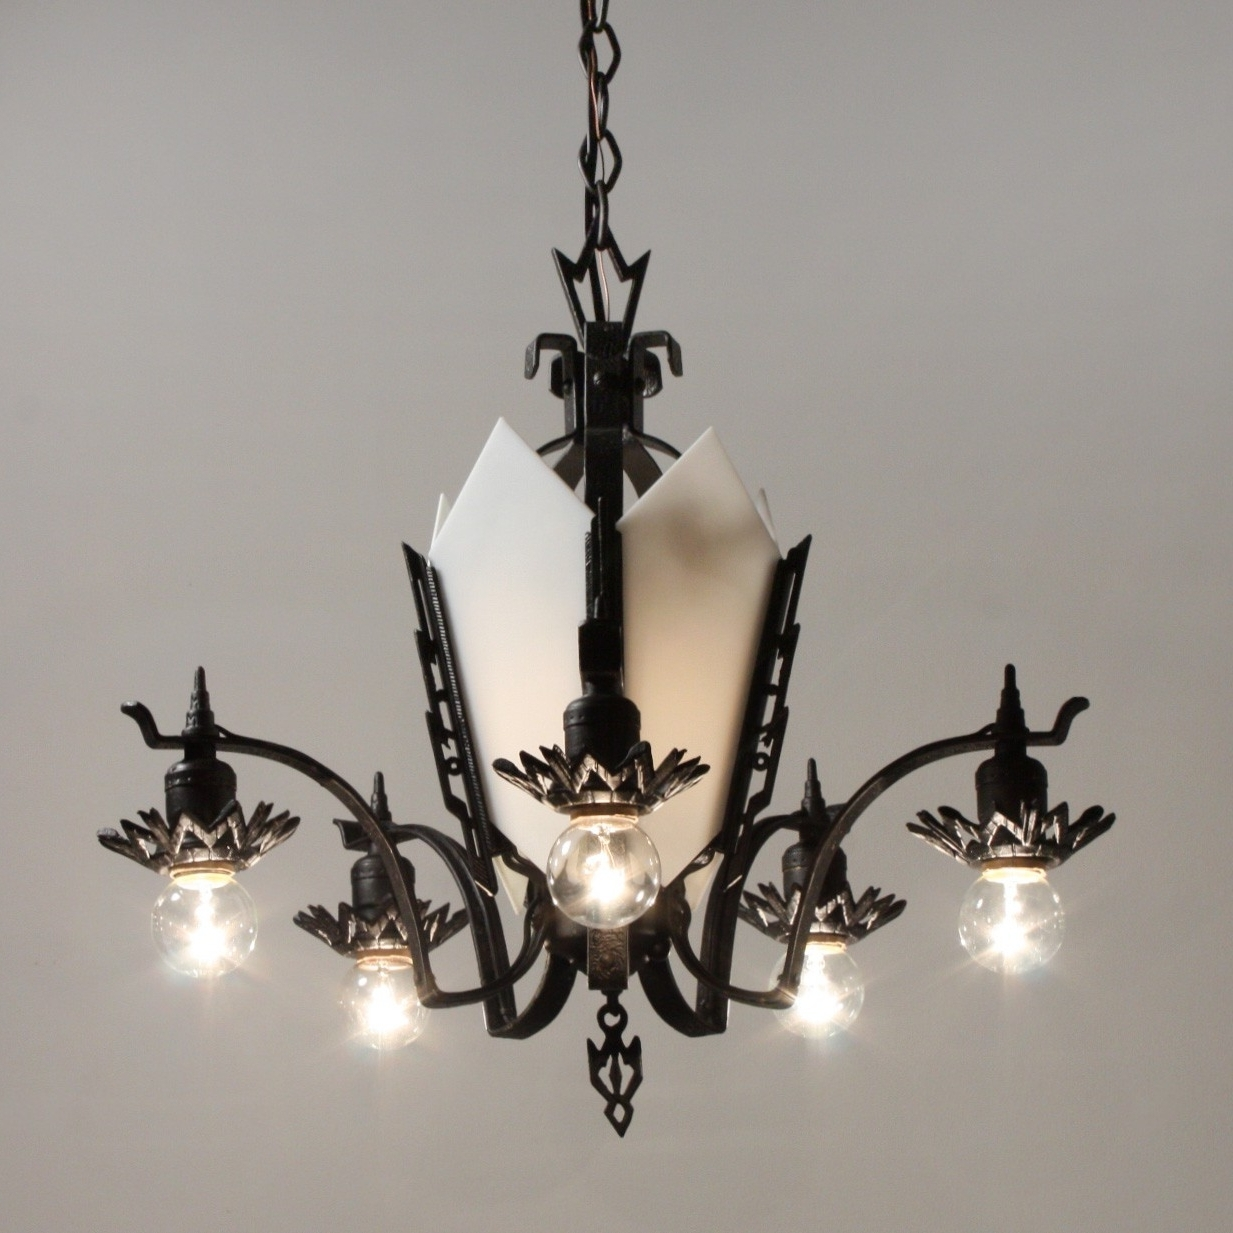 Cast Iron Chandelier Intended For Newest Antique Art Deco Cast Iron Chandelier, C (View 15 of 15)